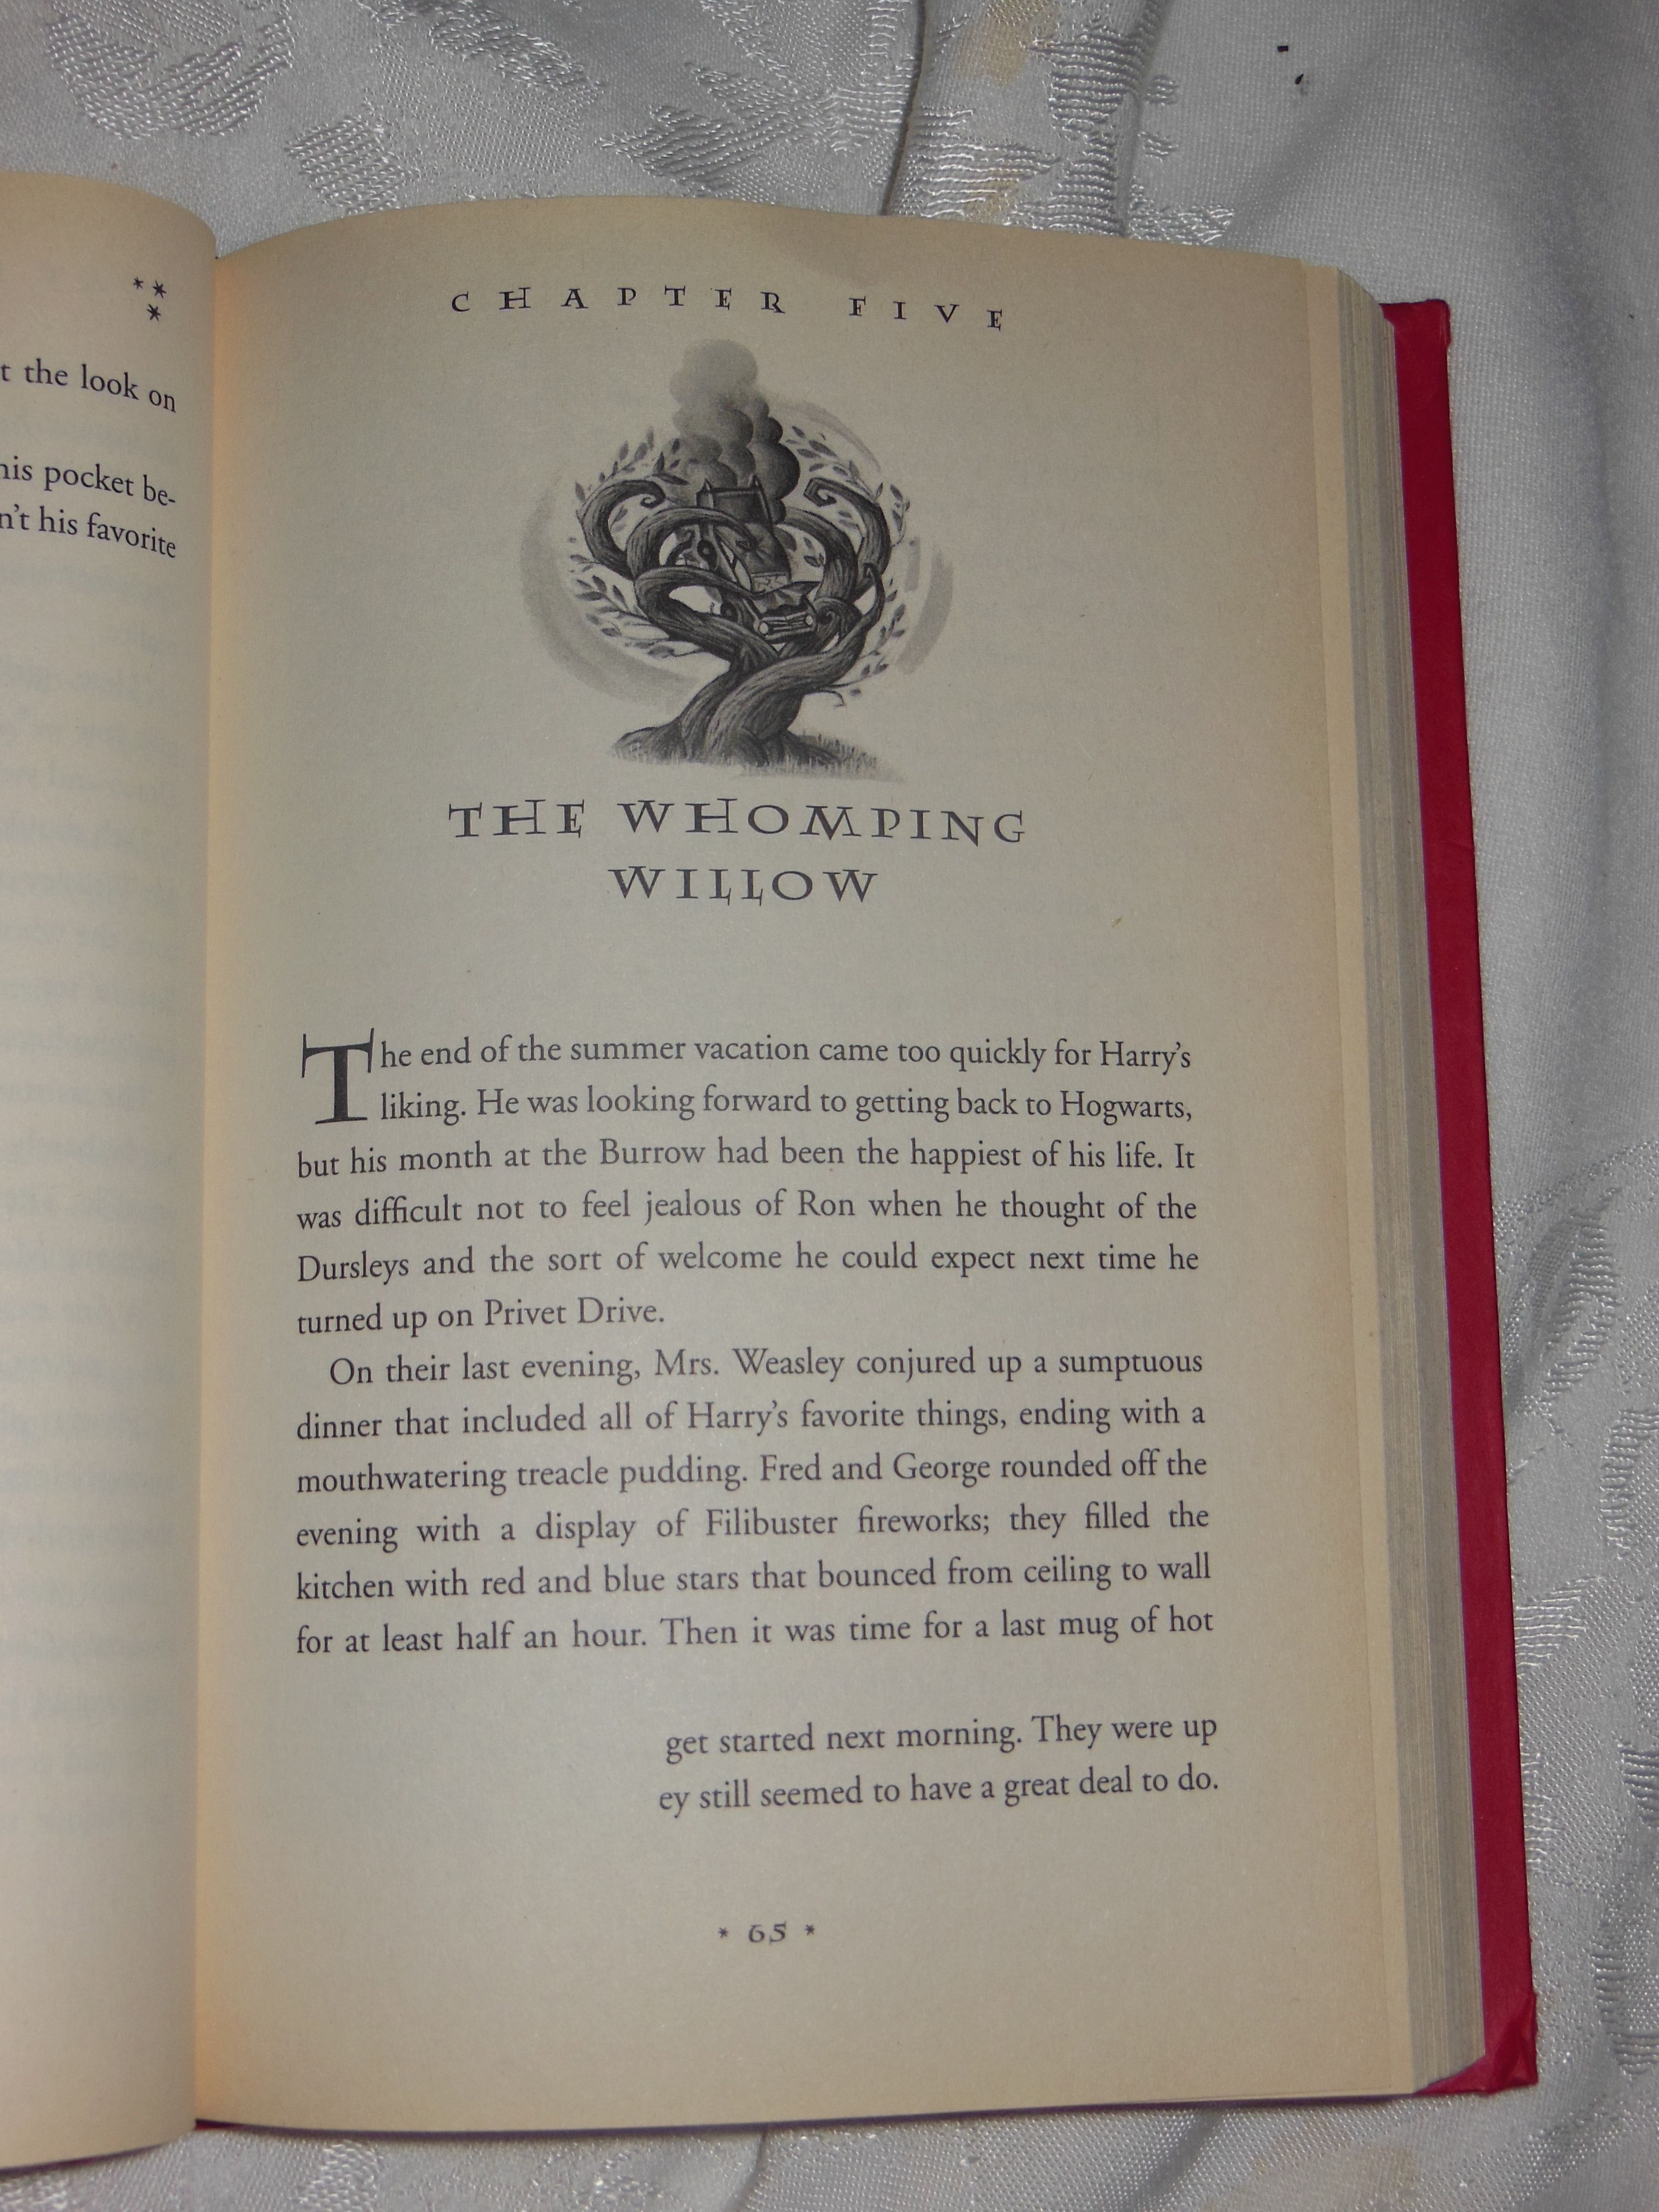 So this is my HP Chamber of Secrets book. As you can see it is missing a few lines. I was wondering if anyone else has this issue. I have had this book for 10+ years.